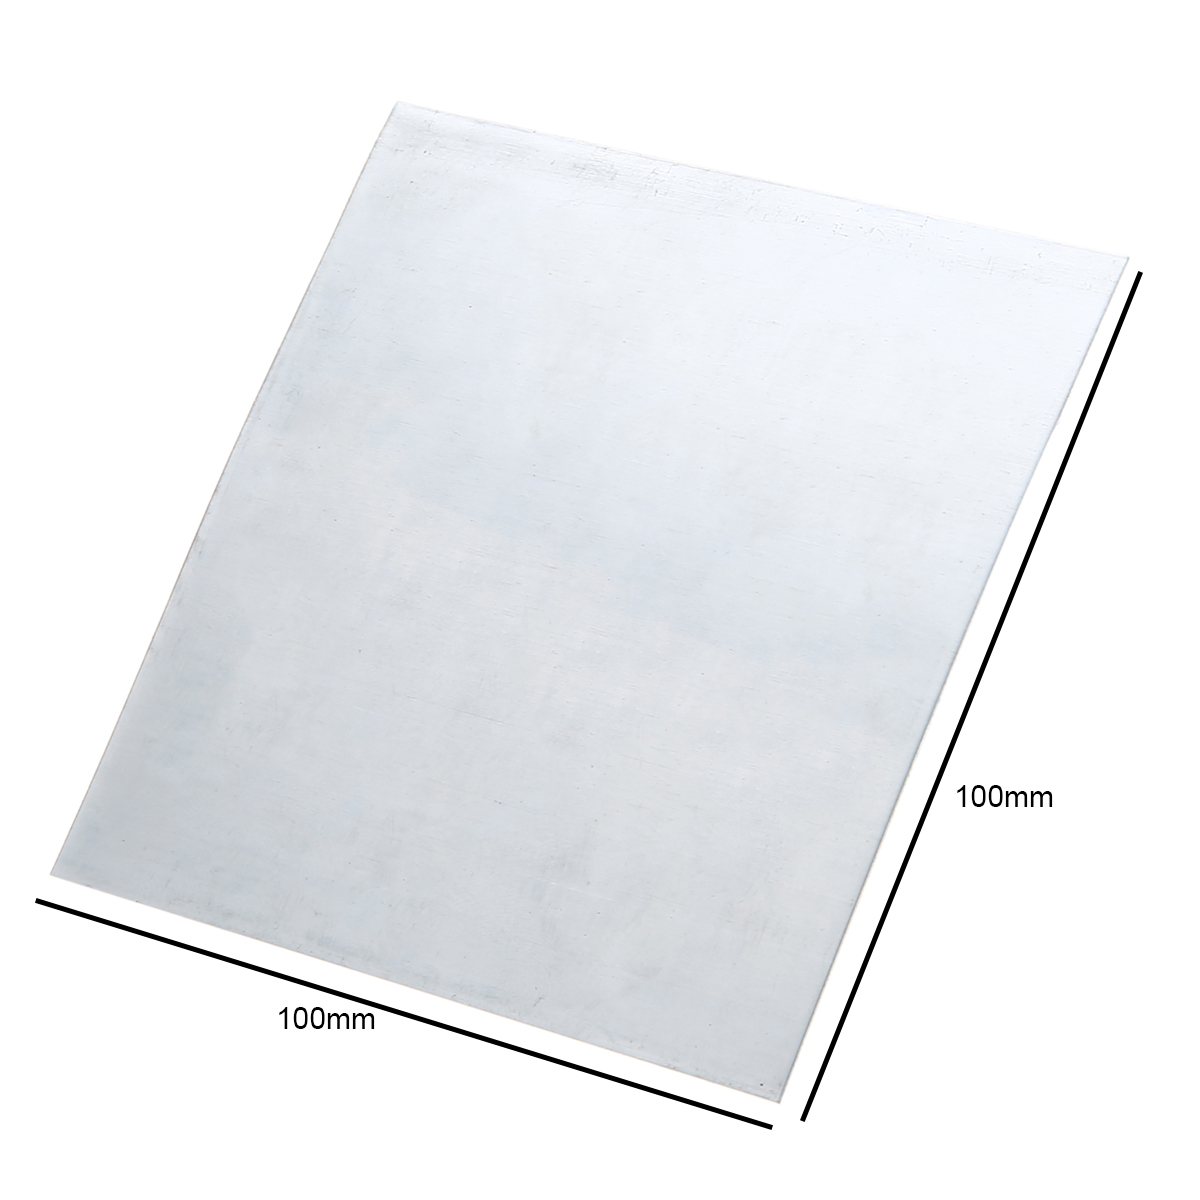 5pcs Pratical Pure Zinc Zn Sheet Plate Metal Foil 100mmx100mmx0.5mm For Science Lab Accessories 1pc high purity copper plate cu metal foil sheet 0 1x200x1000mm best price for power tool accessories